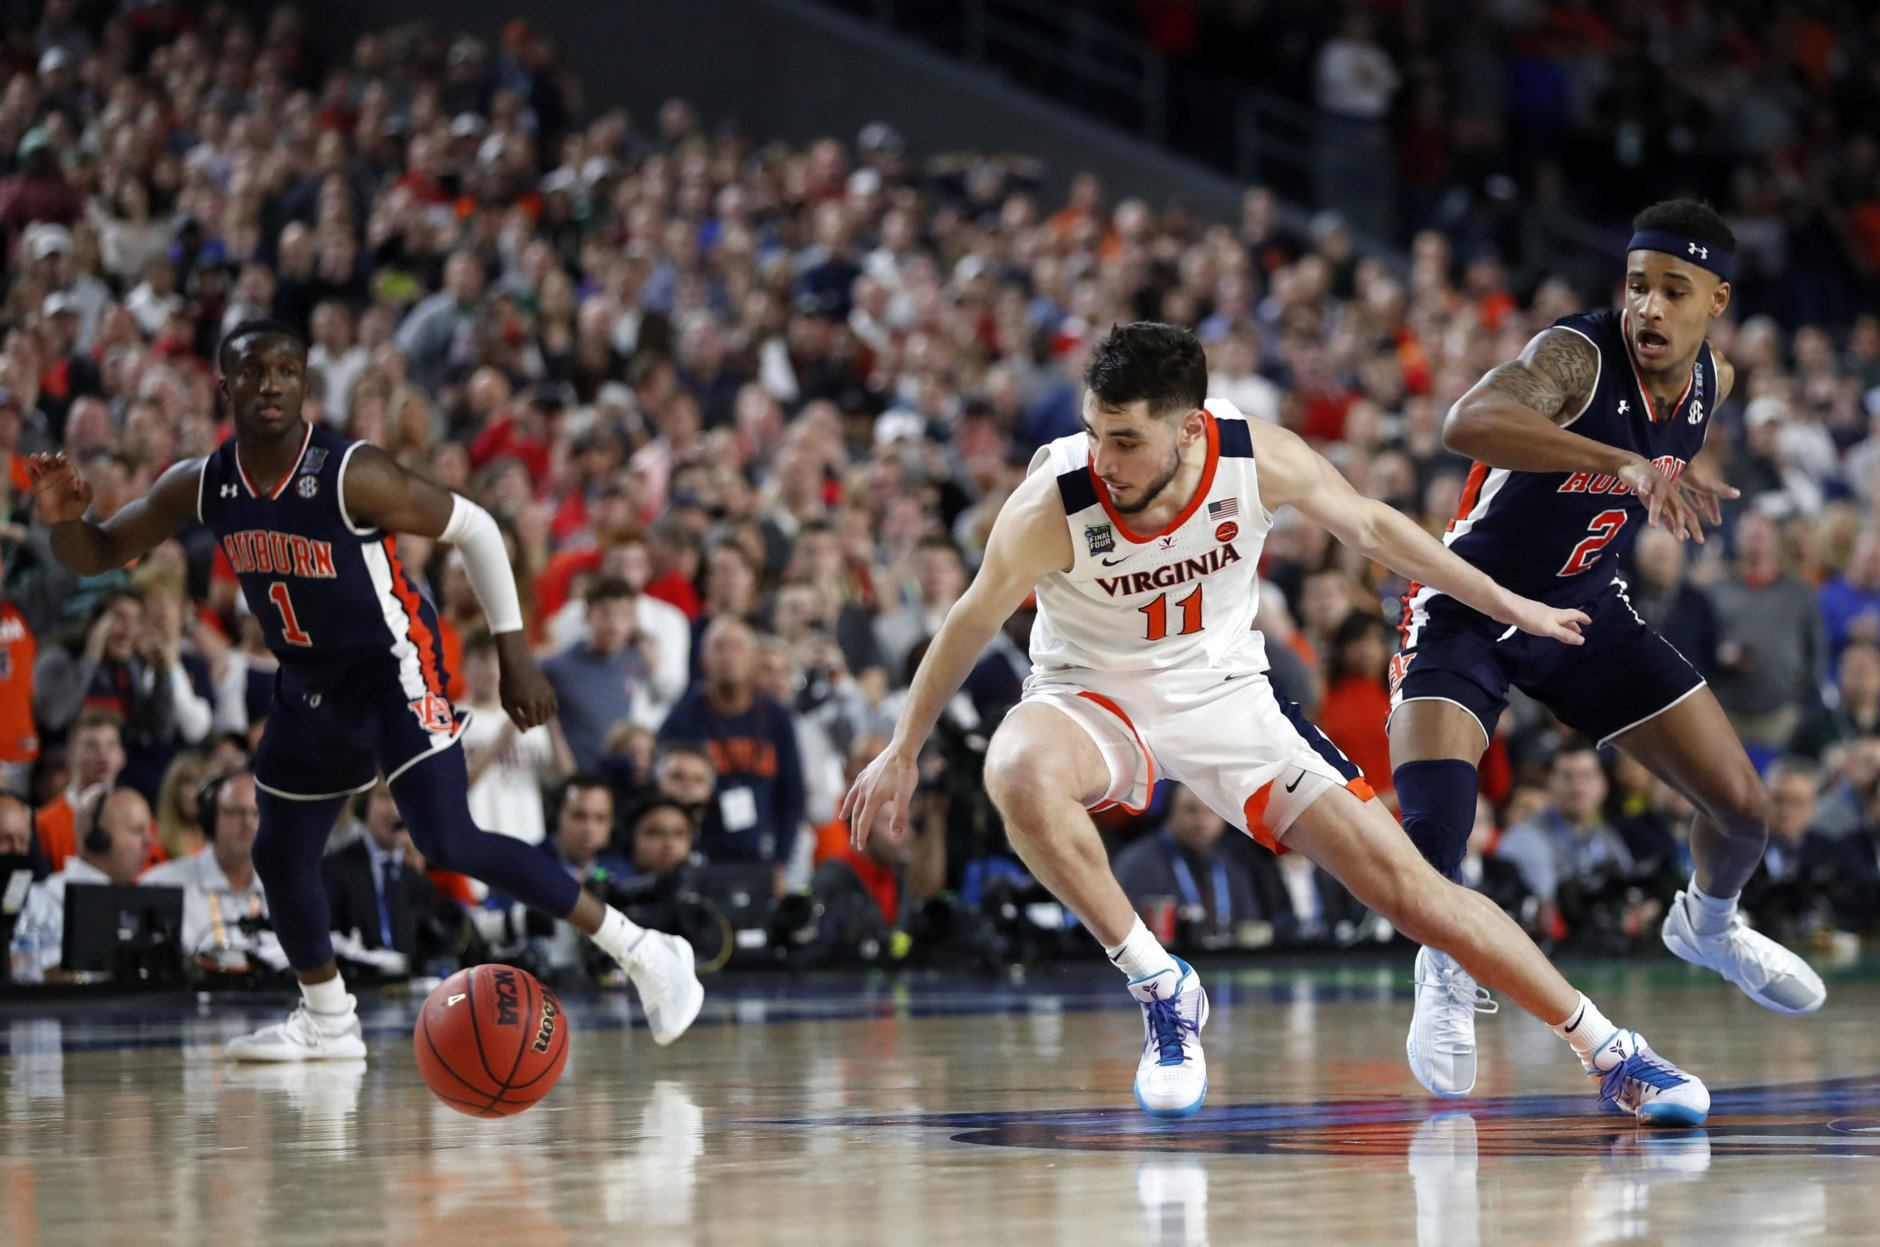 Virginia guard Ty Jerome (11) runs down a loose ball ahead of Auburn guard Bryce Brown, right, during the second half in the semifinals of the Final Four NCAA college basketball tournament, Saturday, April 6, 2019, in Minneapolis. (AP Photo/Jeff Roberson)